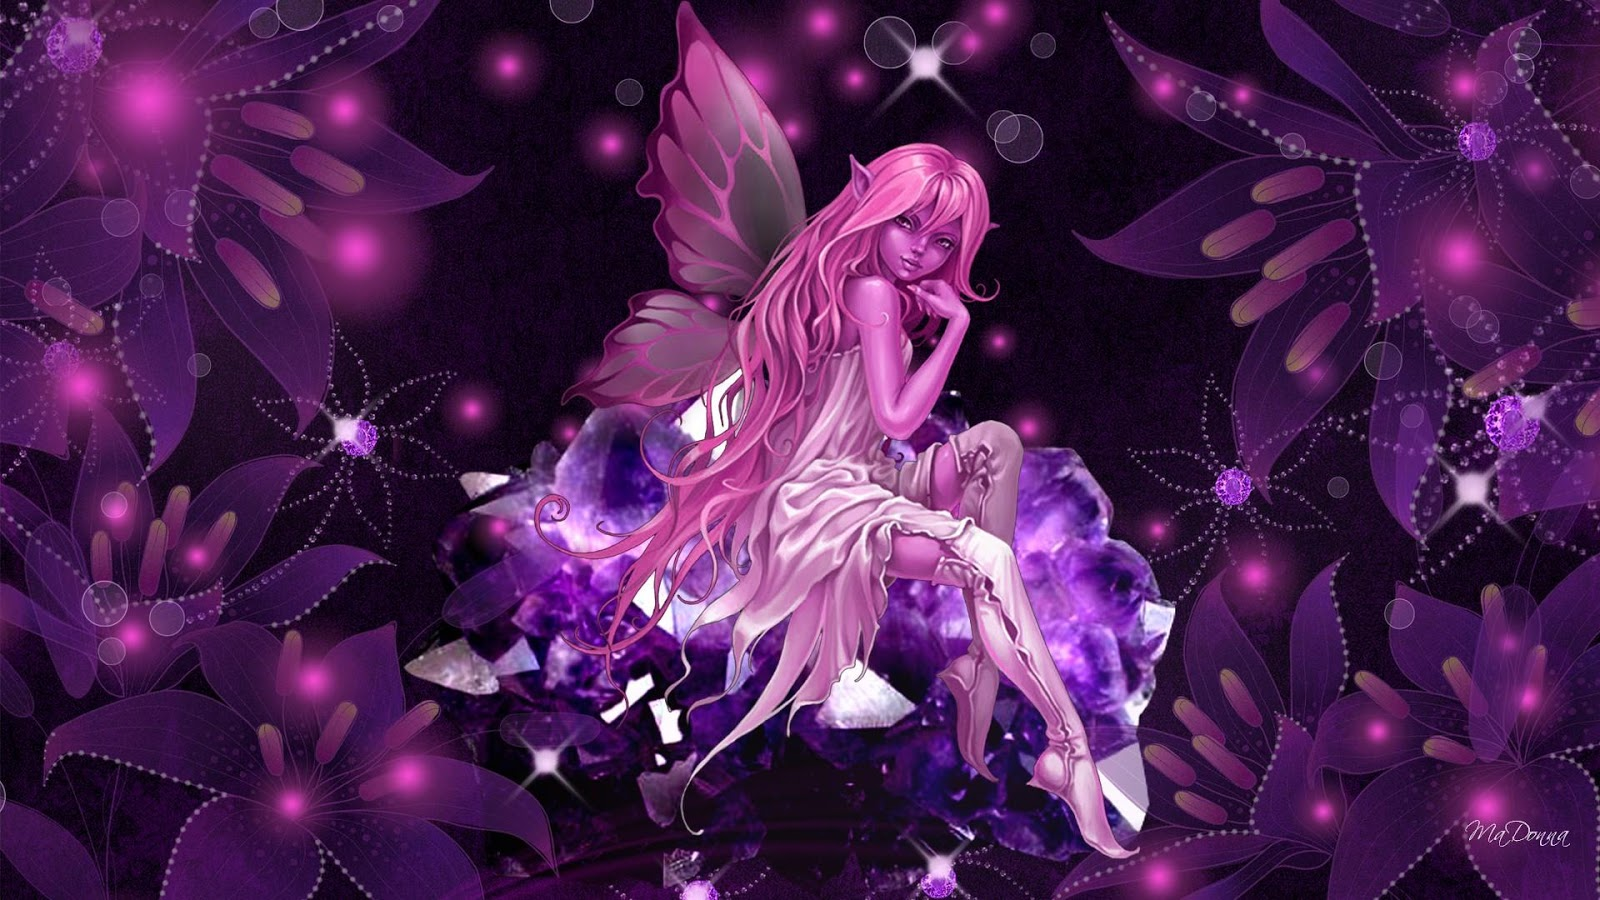 Pink fairy hd live wallpaper 17 apk download android pink fairy hd live wallpaper 17 screenshot 1 altavistaventures Gallery